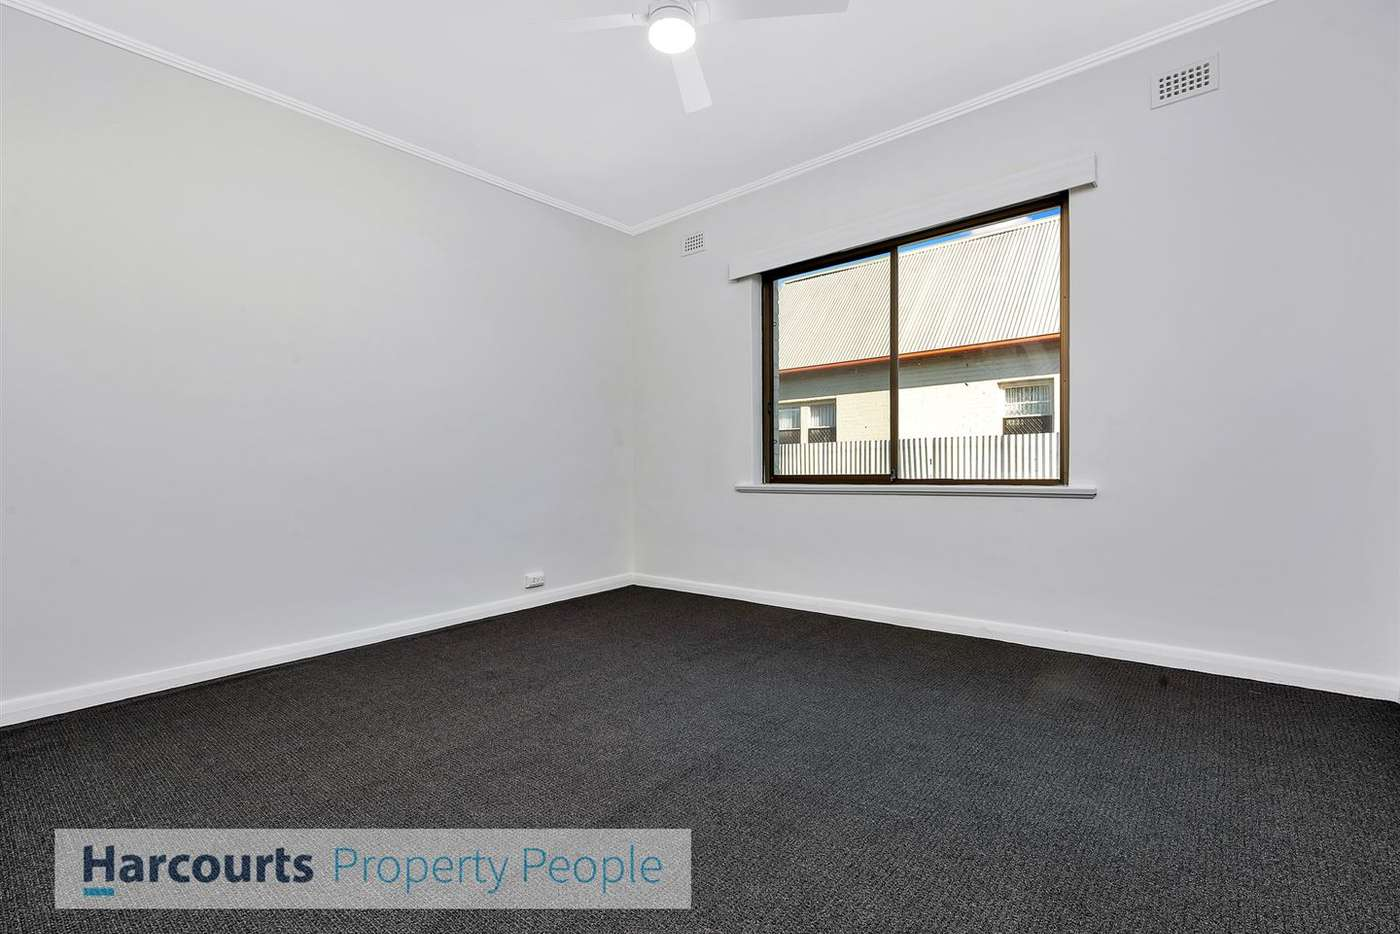 Sixth view of Homely house listing, 141 William Street, Beverley SA 5009